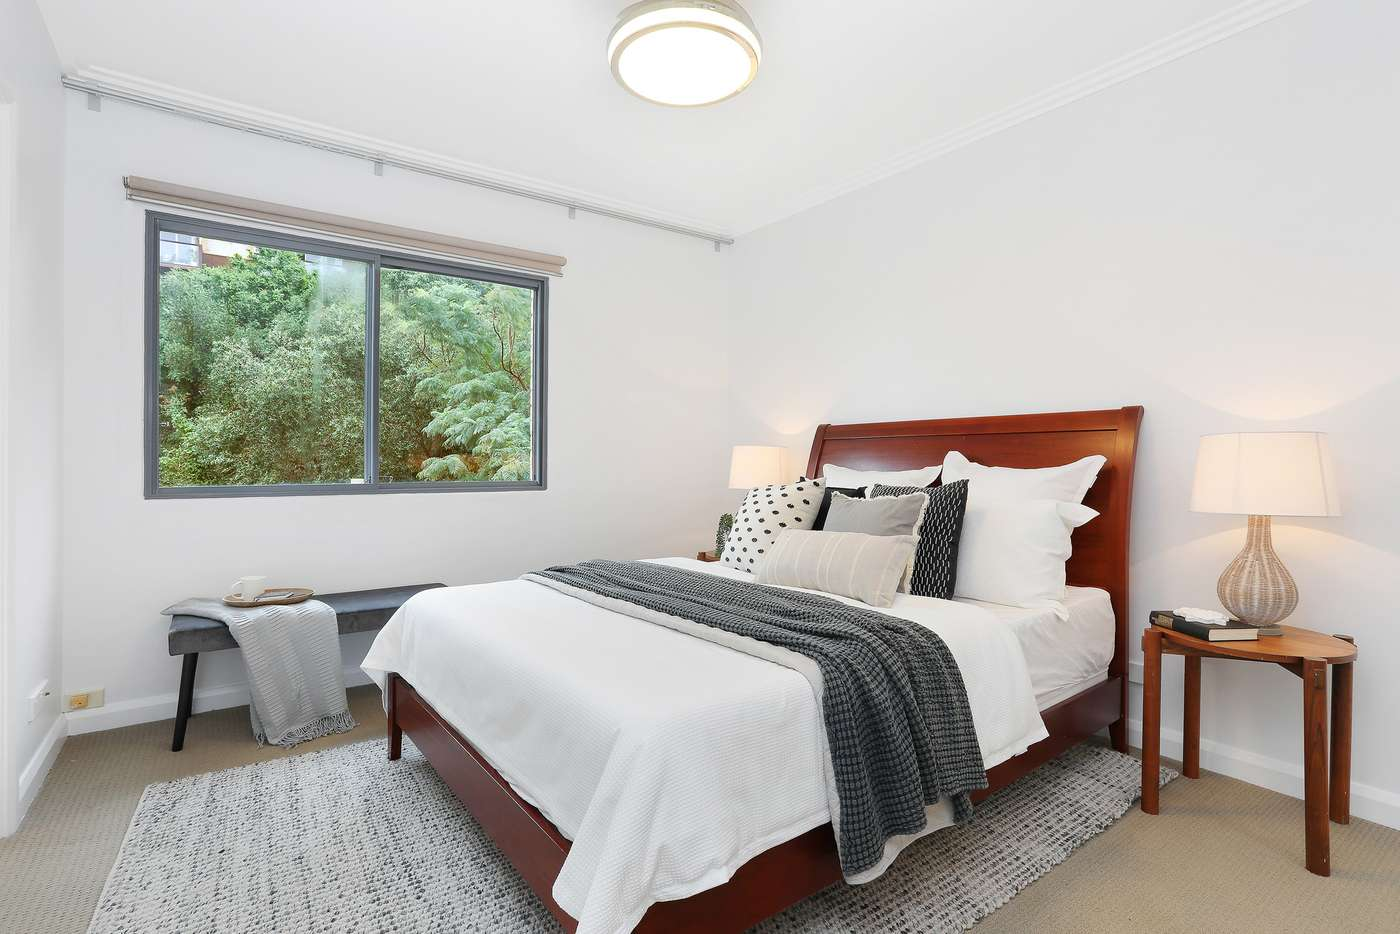 Fifth view of Homely apartment listing, 6/156 Old South Head Road, Bellevue Hill NSW 2023